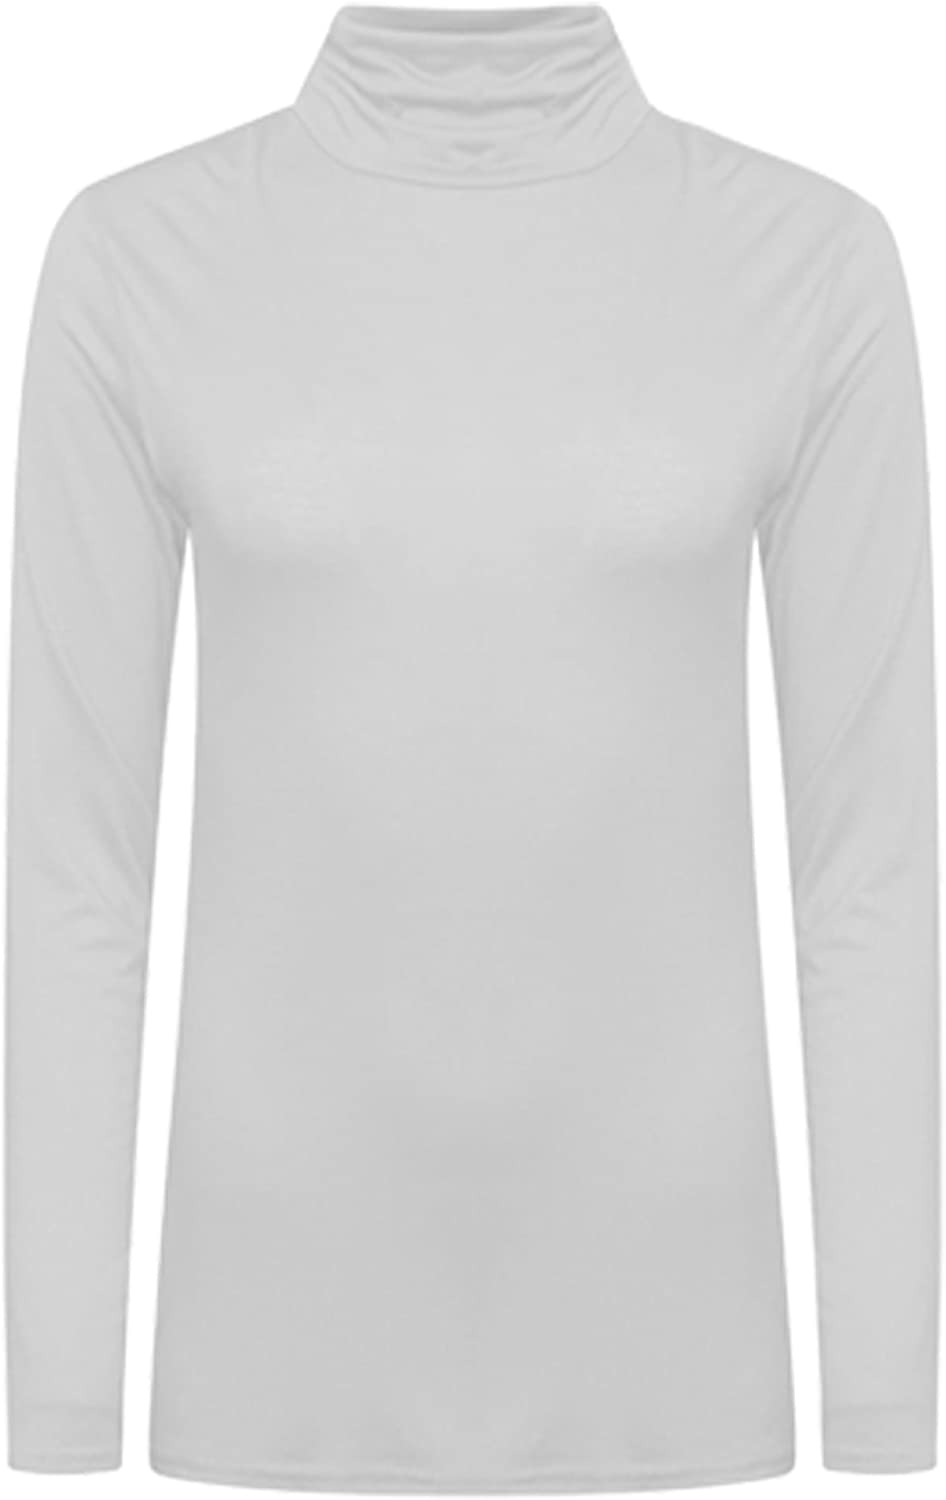 Womens Ladies Polo Roll Neck Long Sleeve Turtle Neck Plain Jumper Top 8 26 Stretch T-Shirt Tee Vest